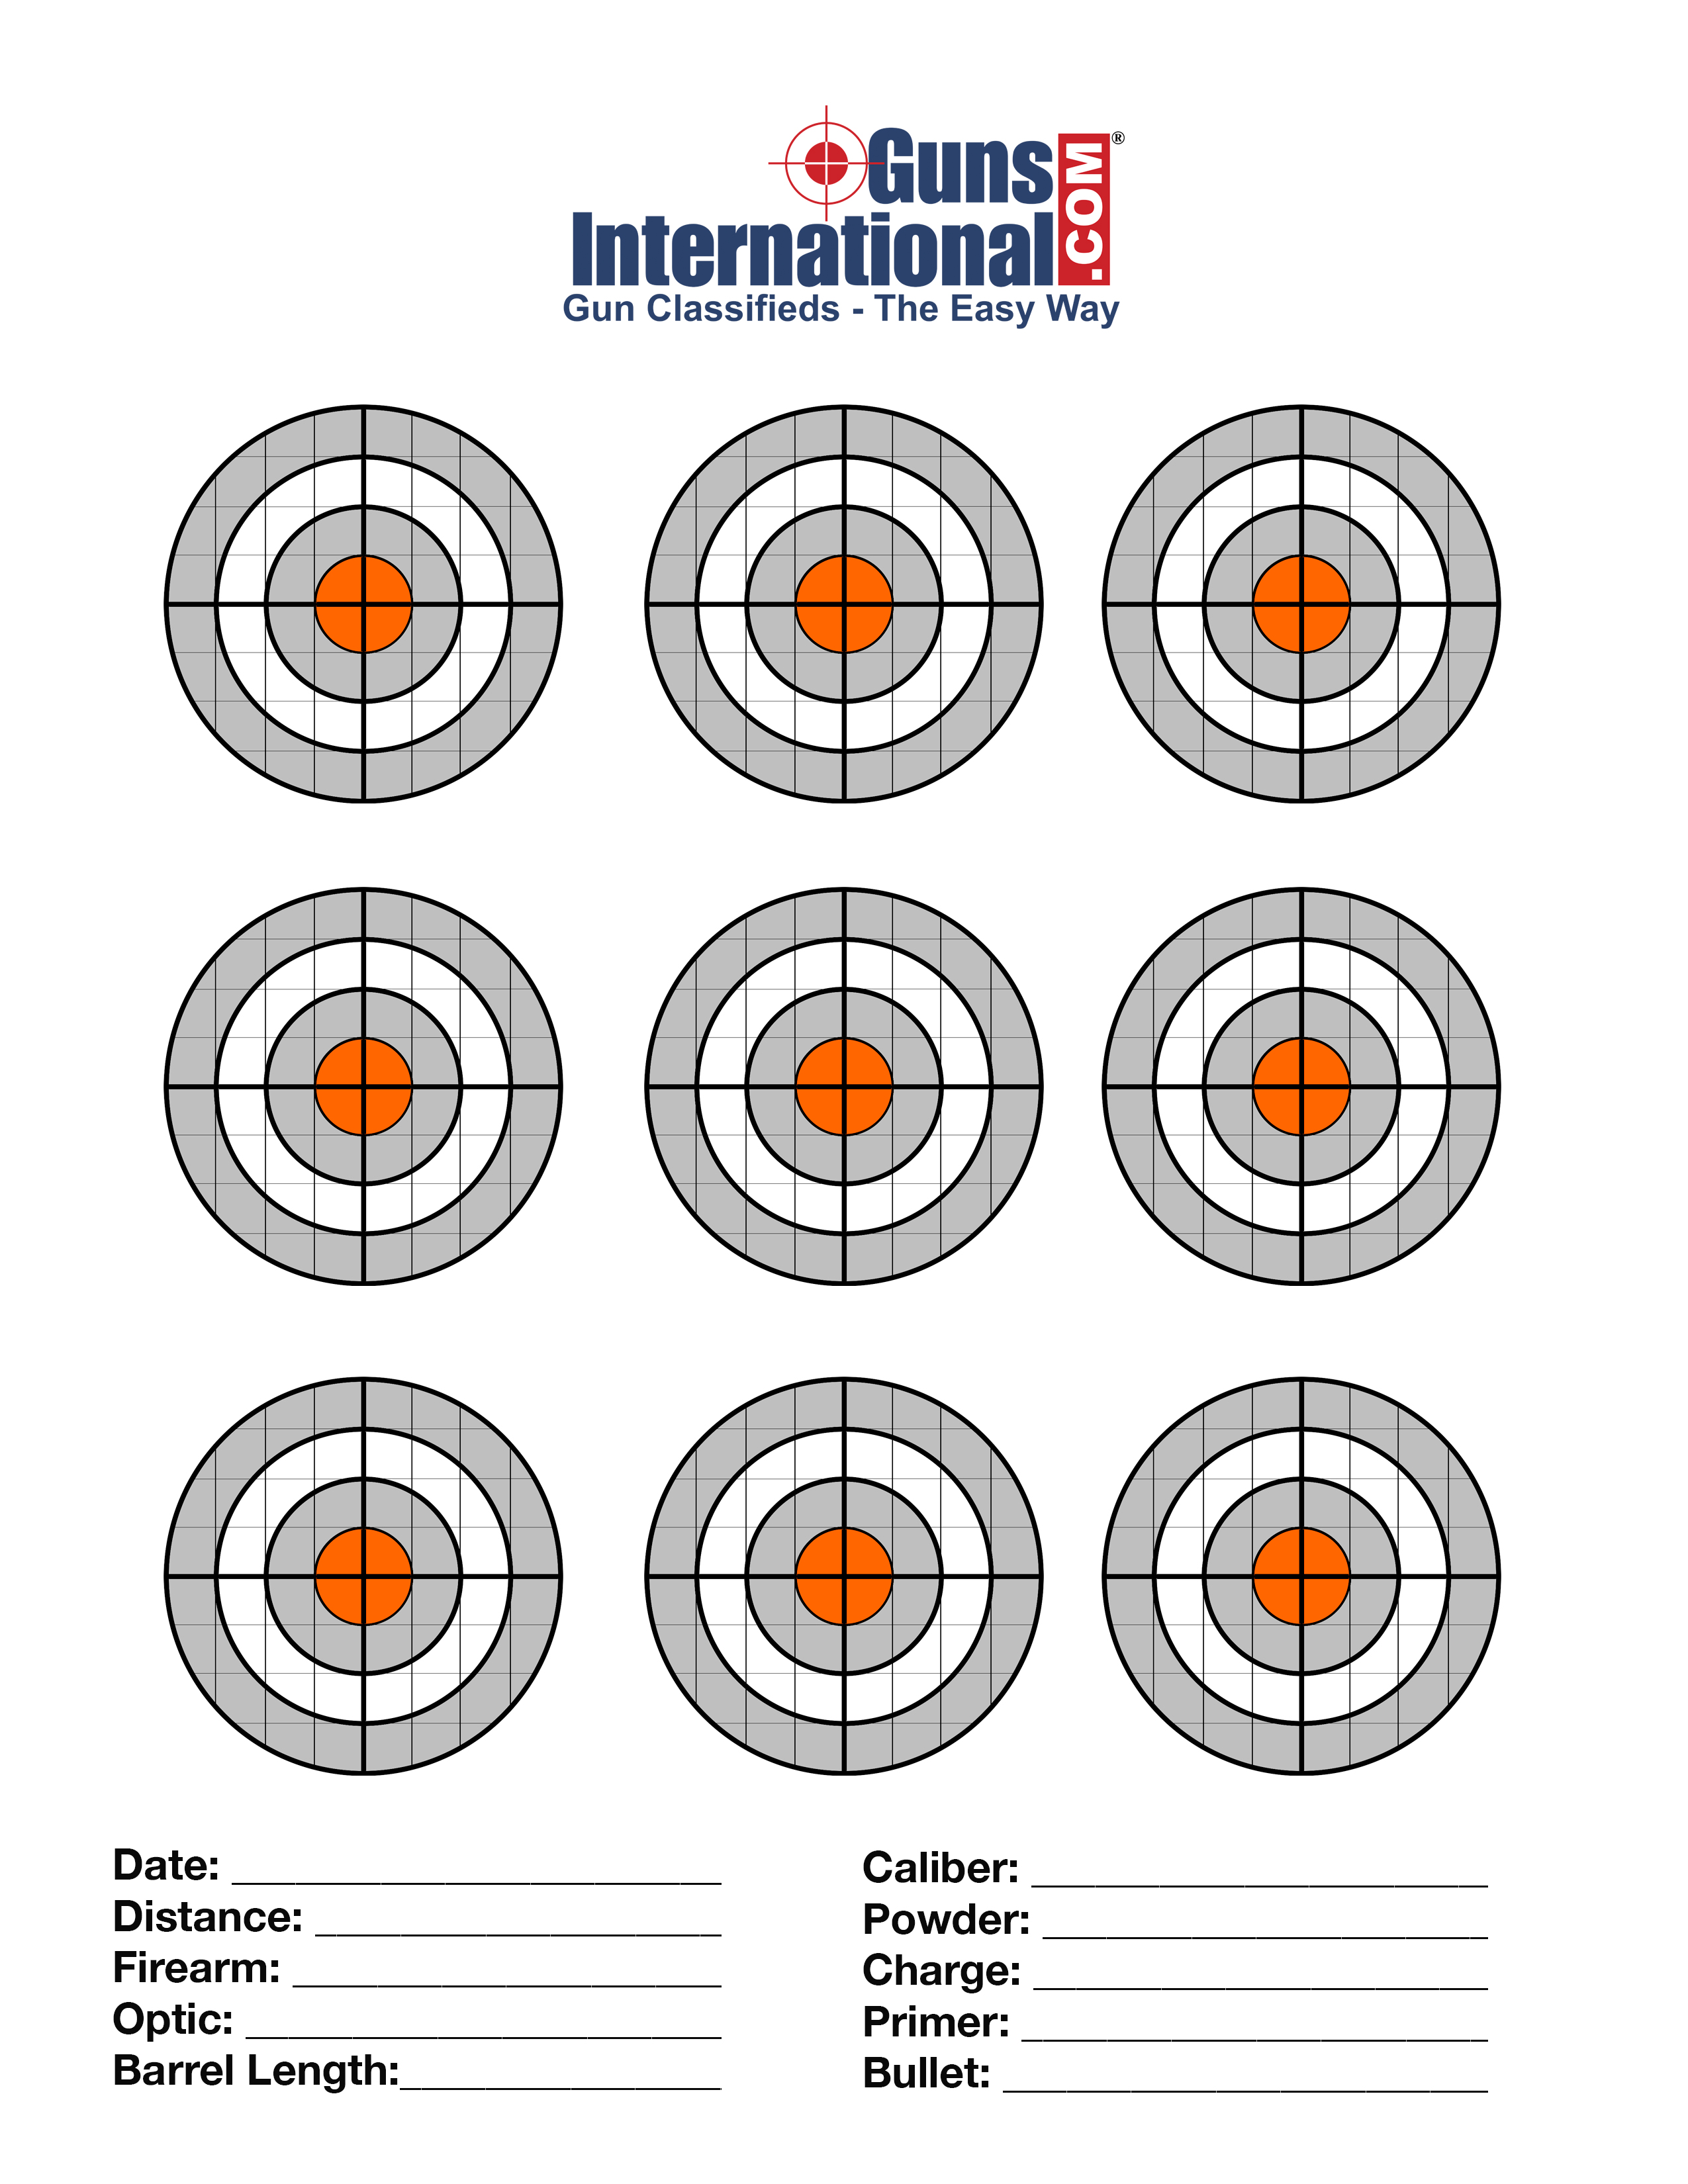 This is a picture of Playful Free Targets Online